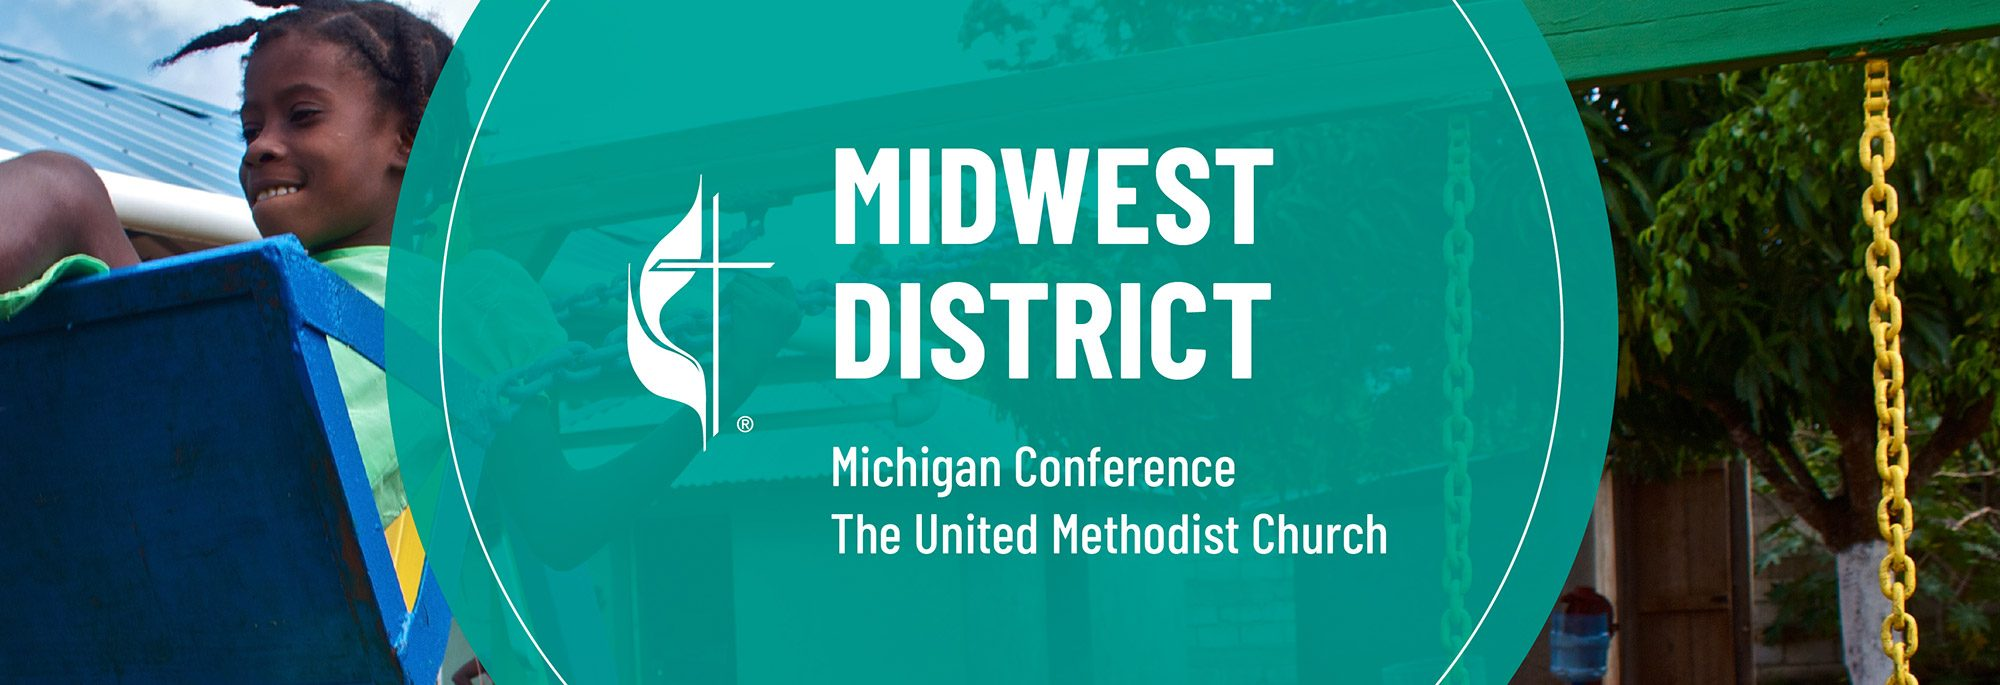 Midwest District Logo